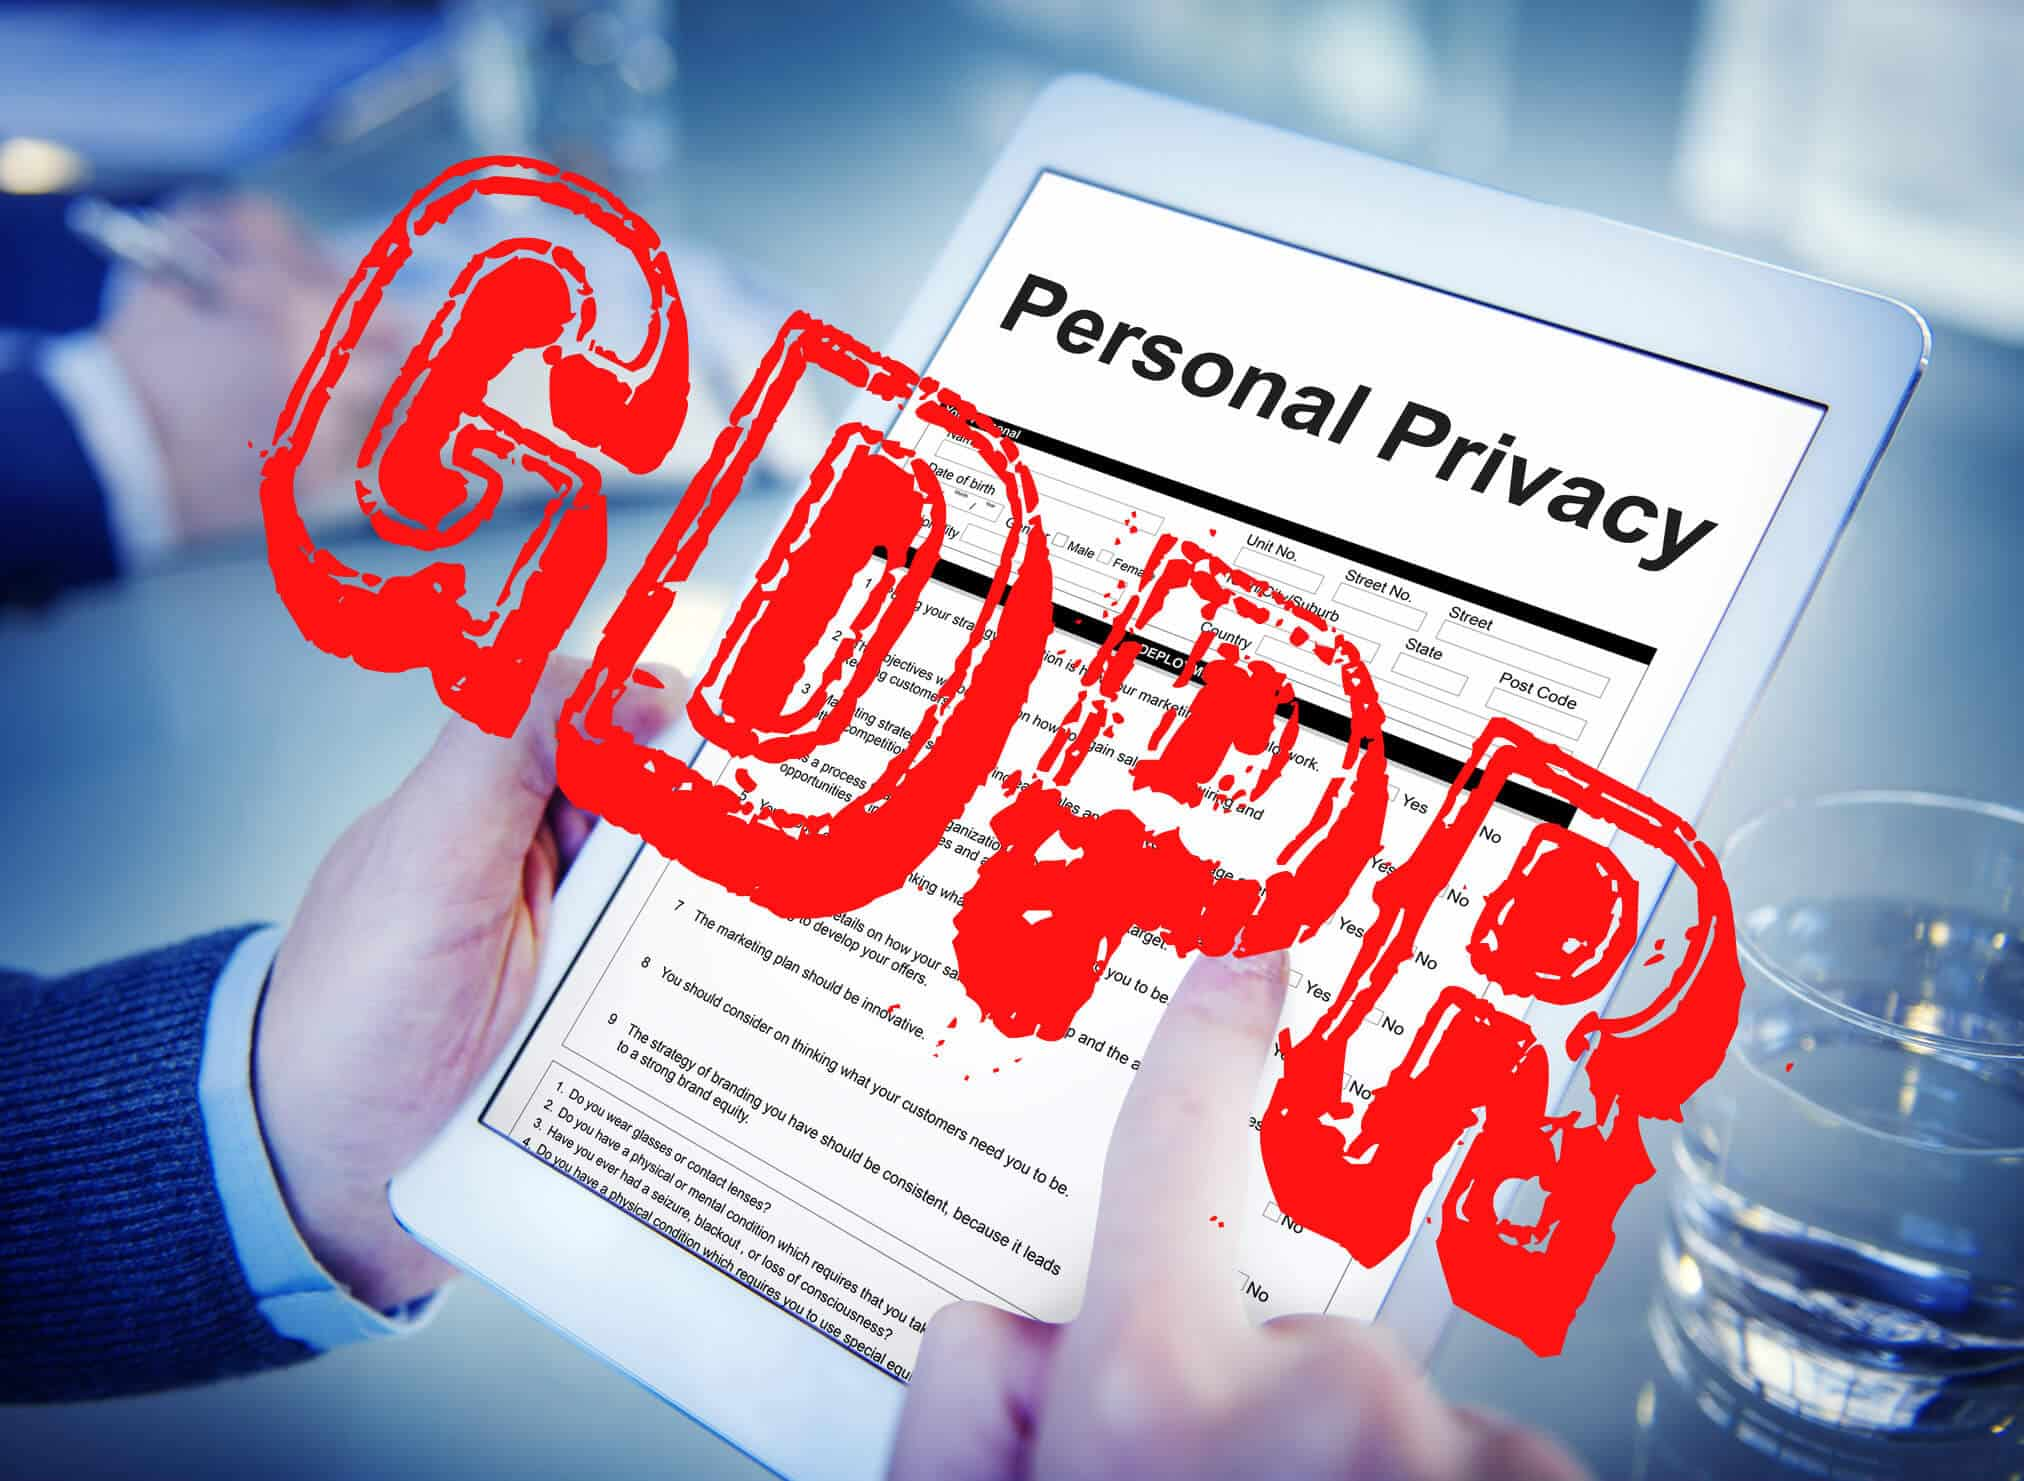 Privac form on a tablet computer, with the initials GDPR over it in red text